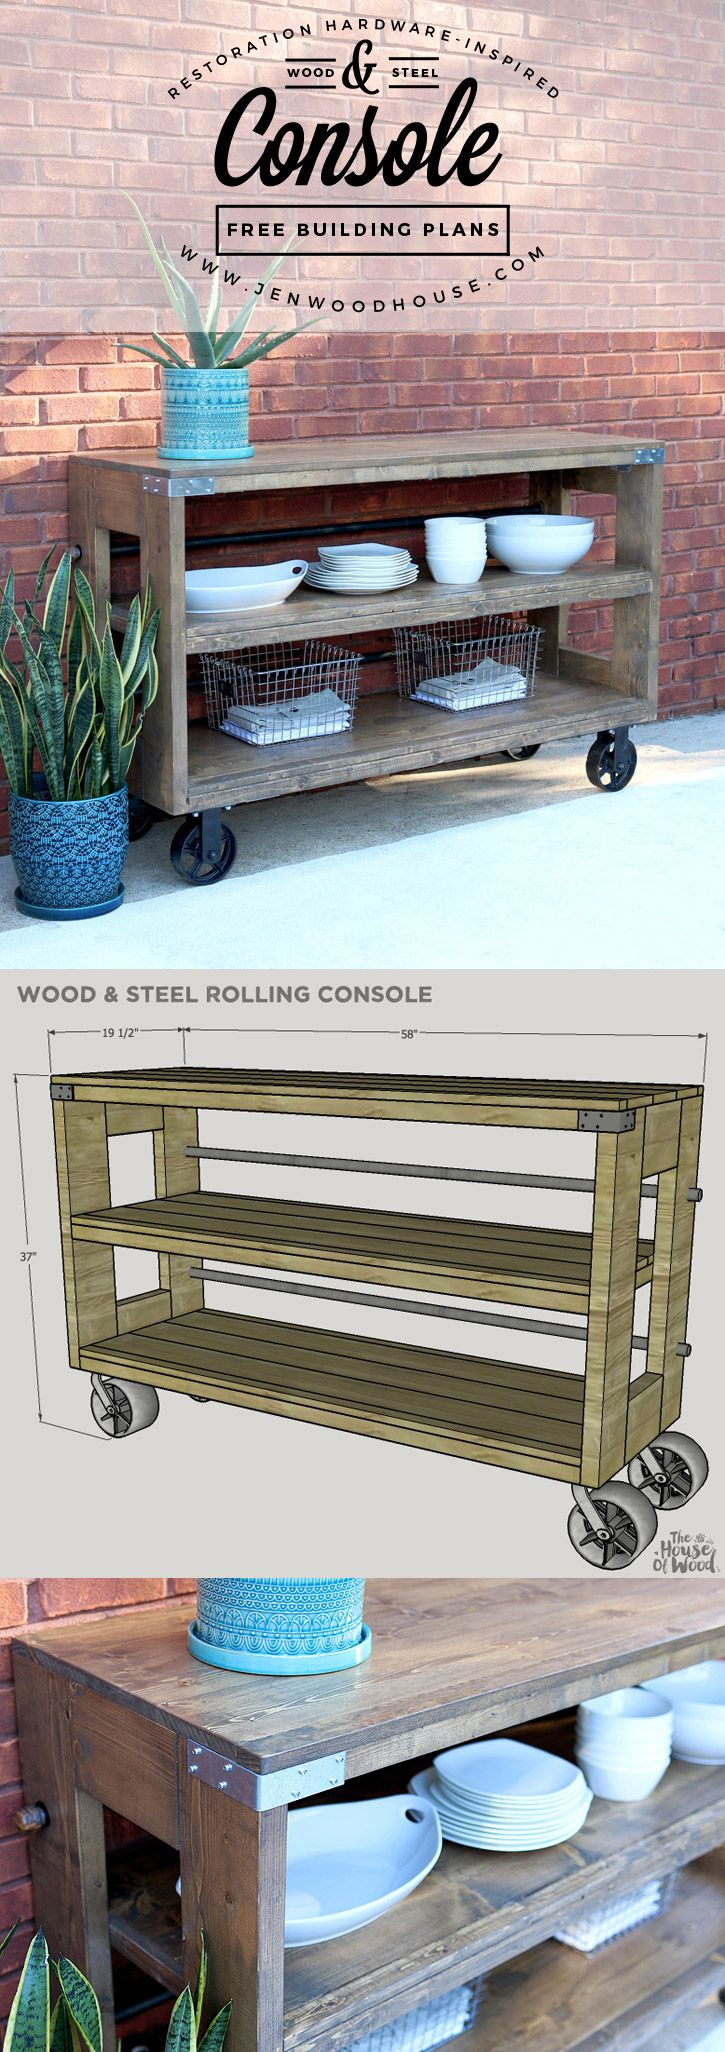 Restoration Hardware Wood and Steel Console | Diy outdoor ...